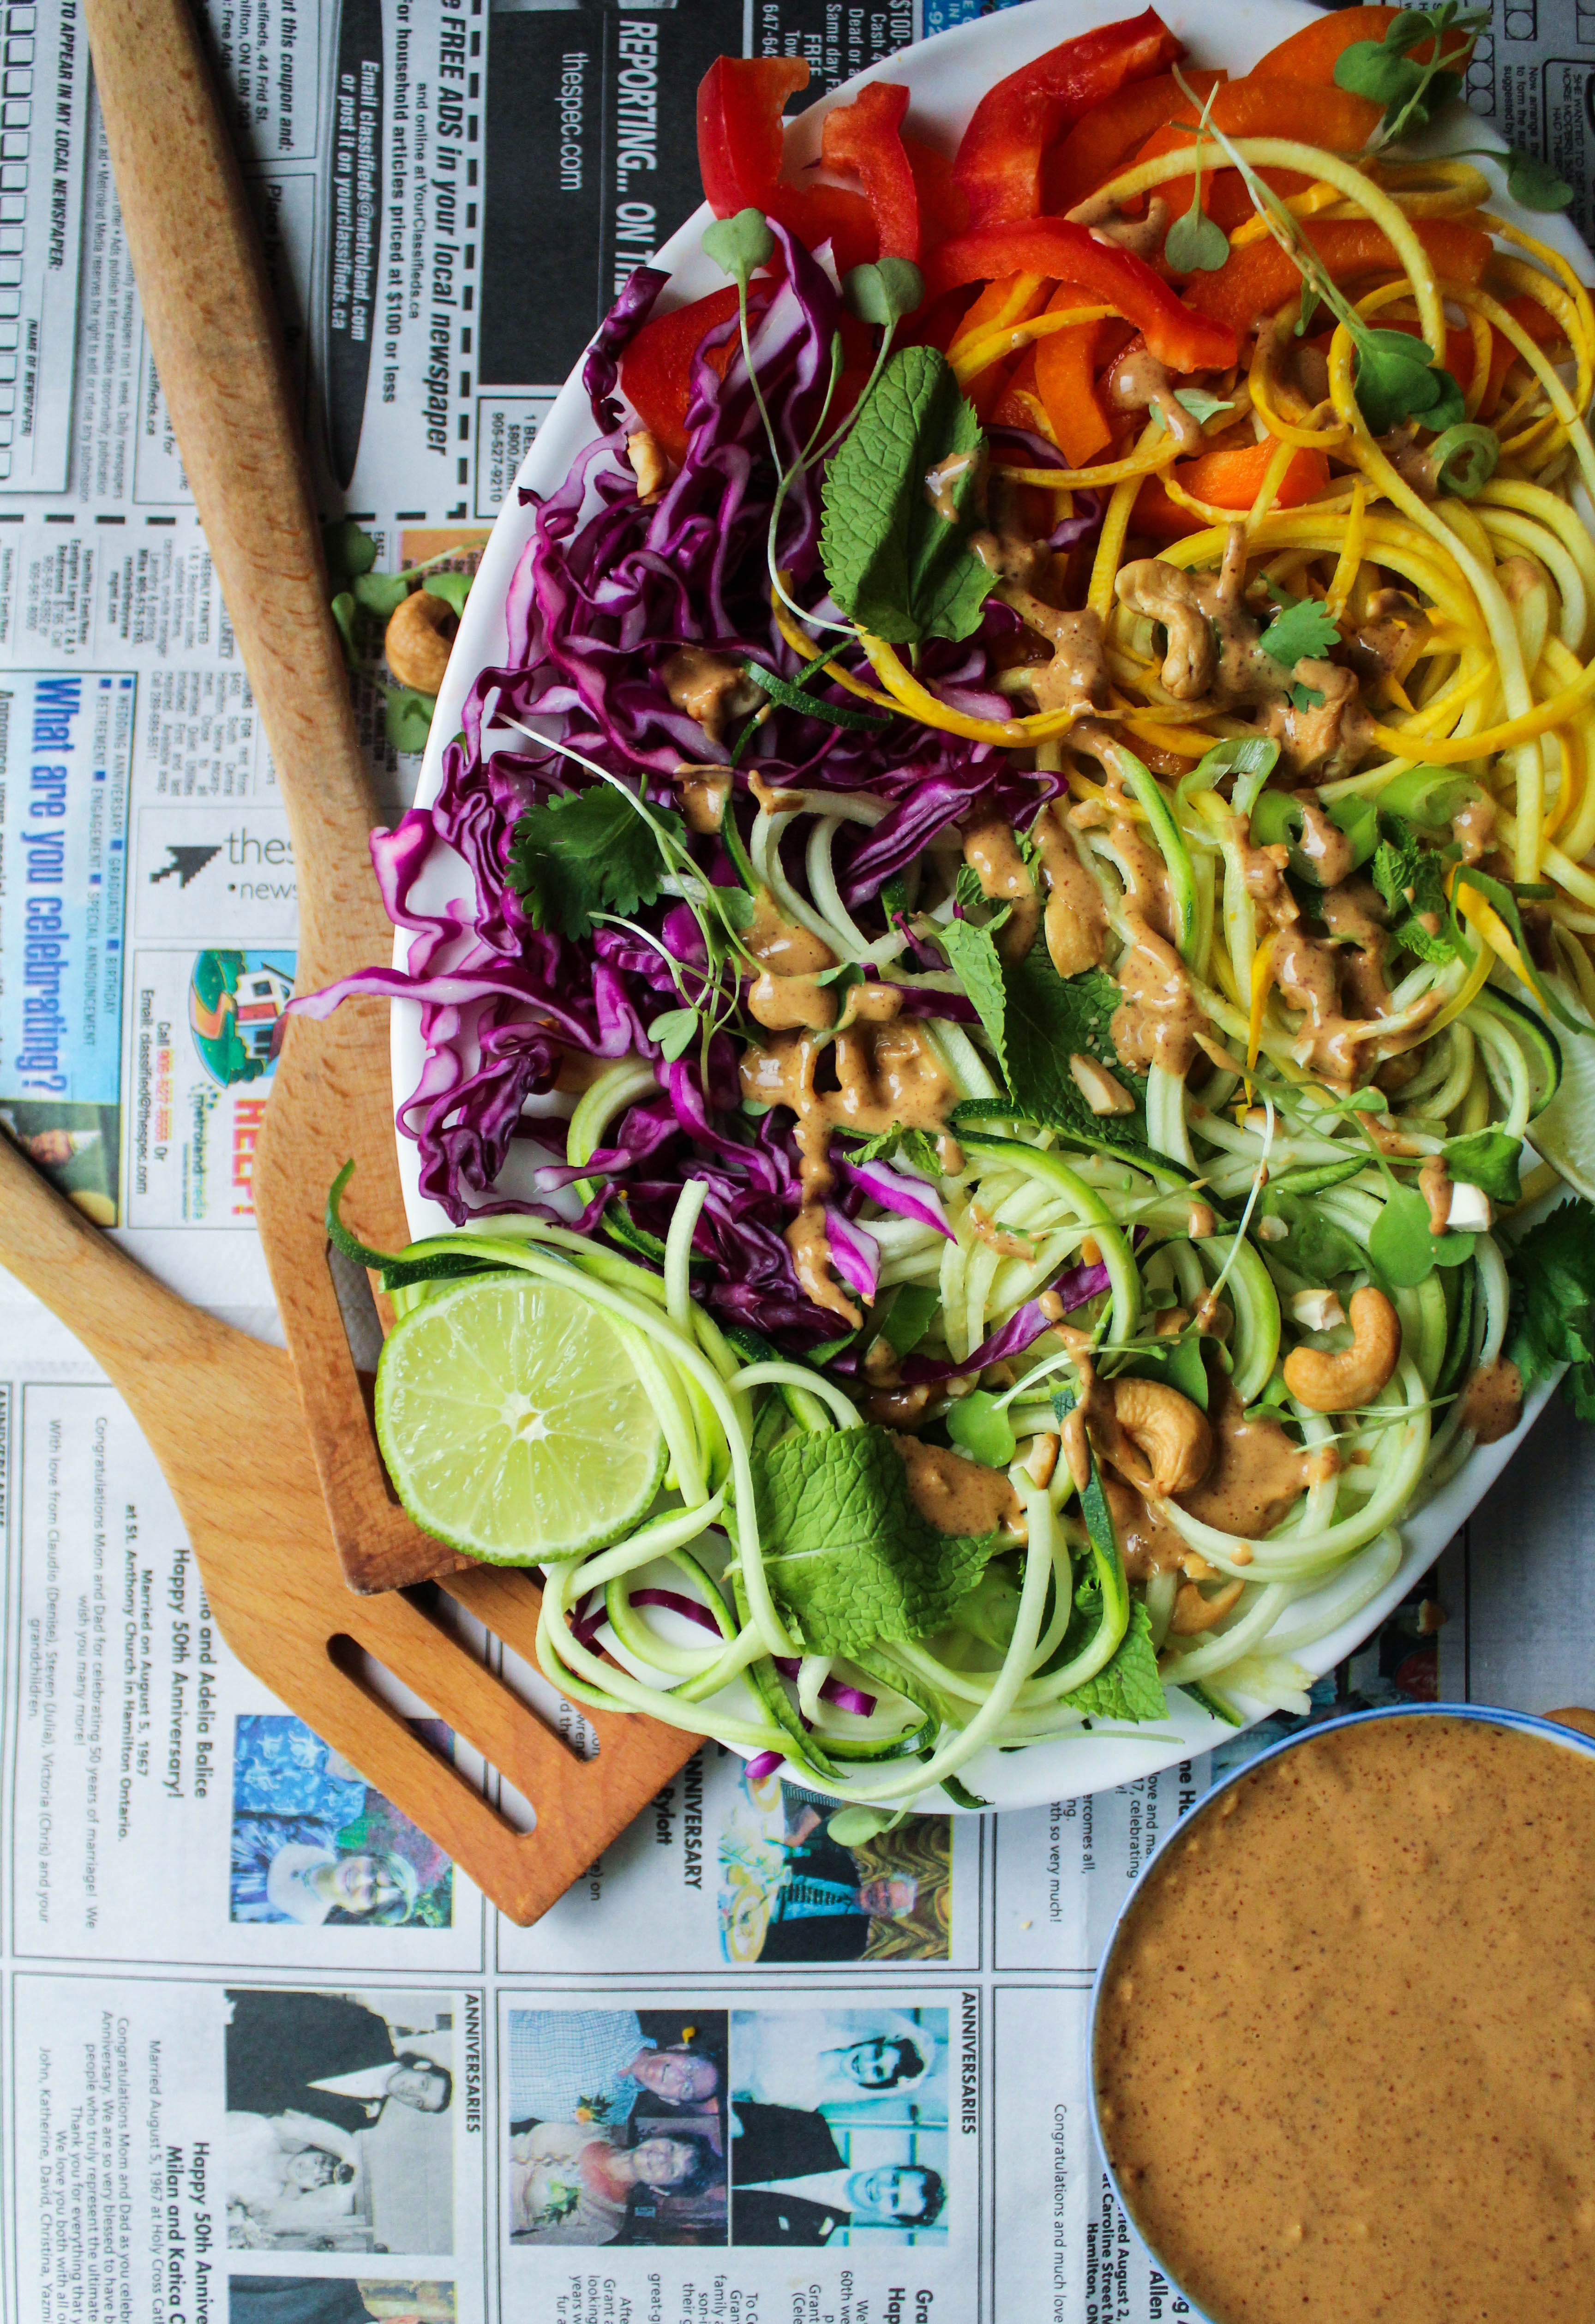 Tangled Thai Salad w/ Ginger Almond Sauce